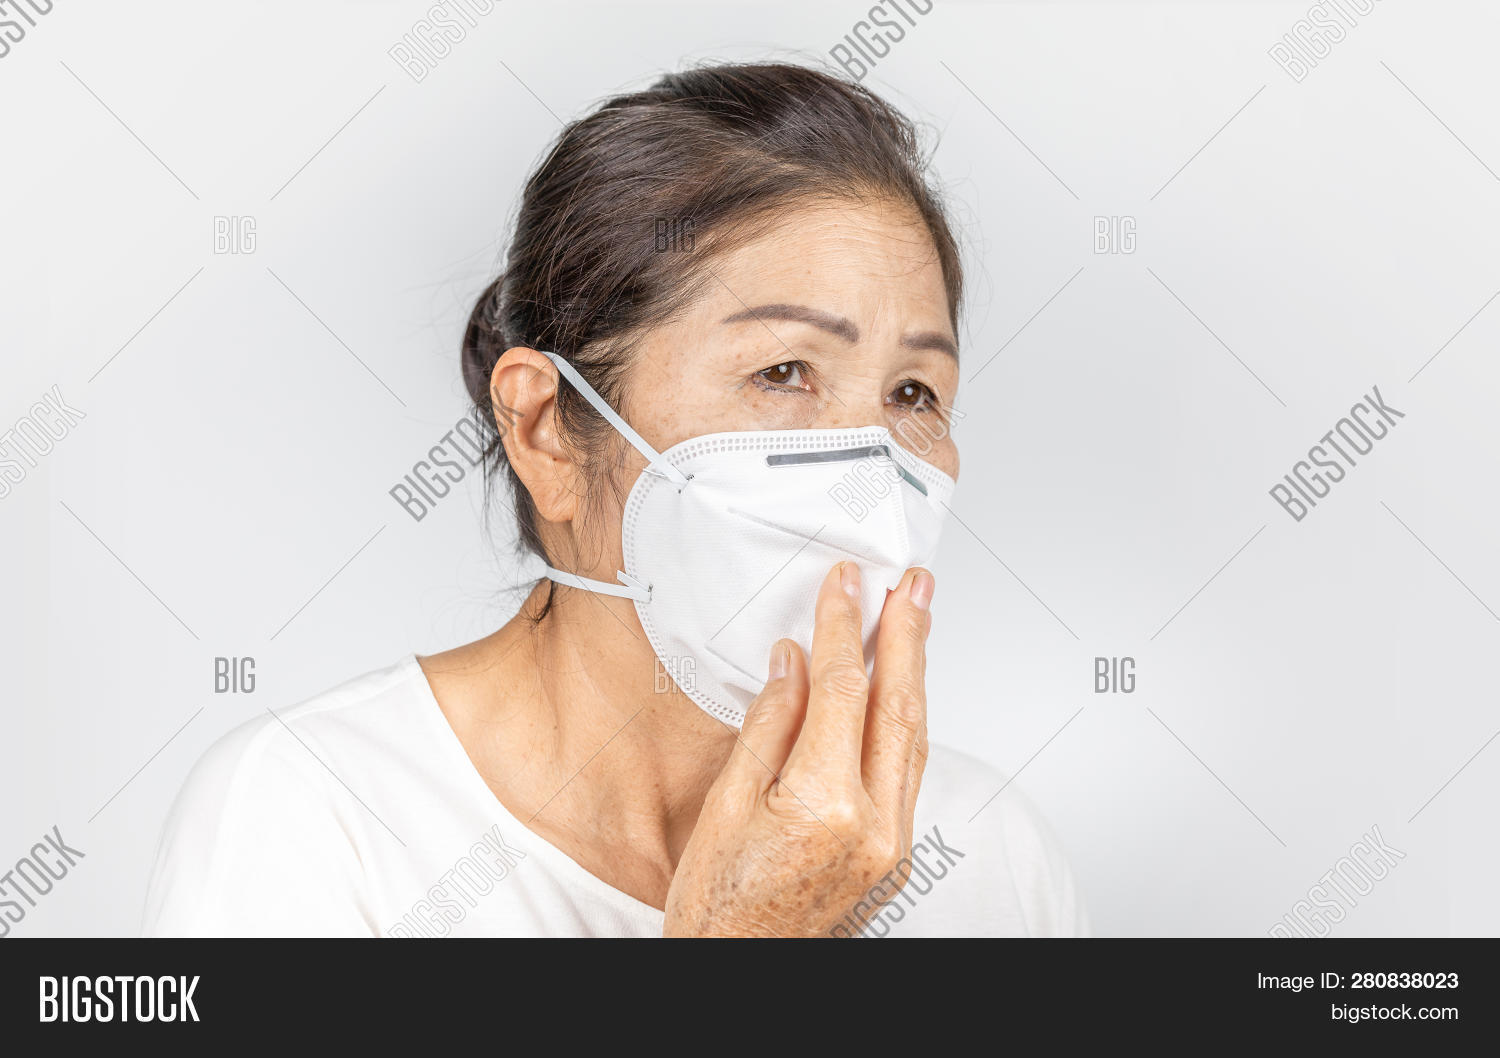 N95 amp; Trial Photo Wearing Bigstock Image Woman Old free